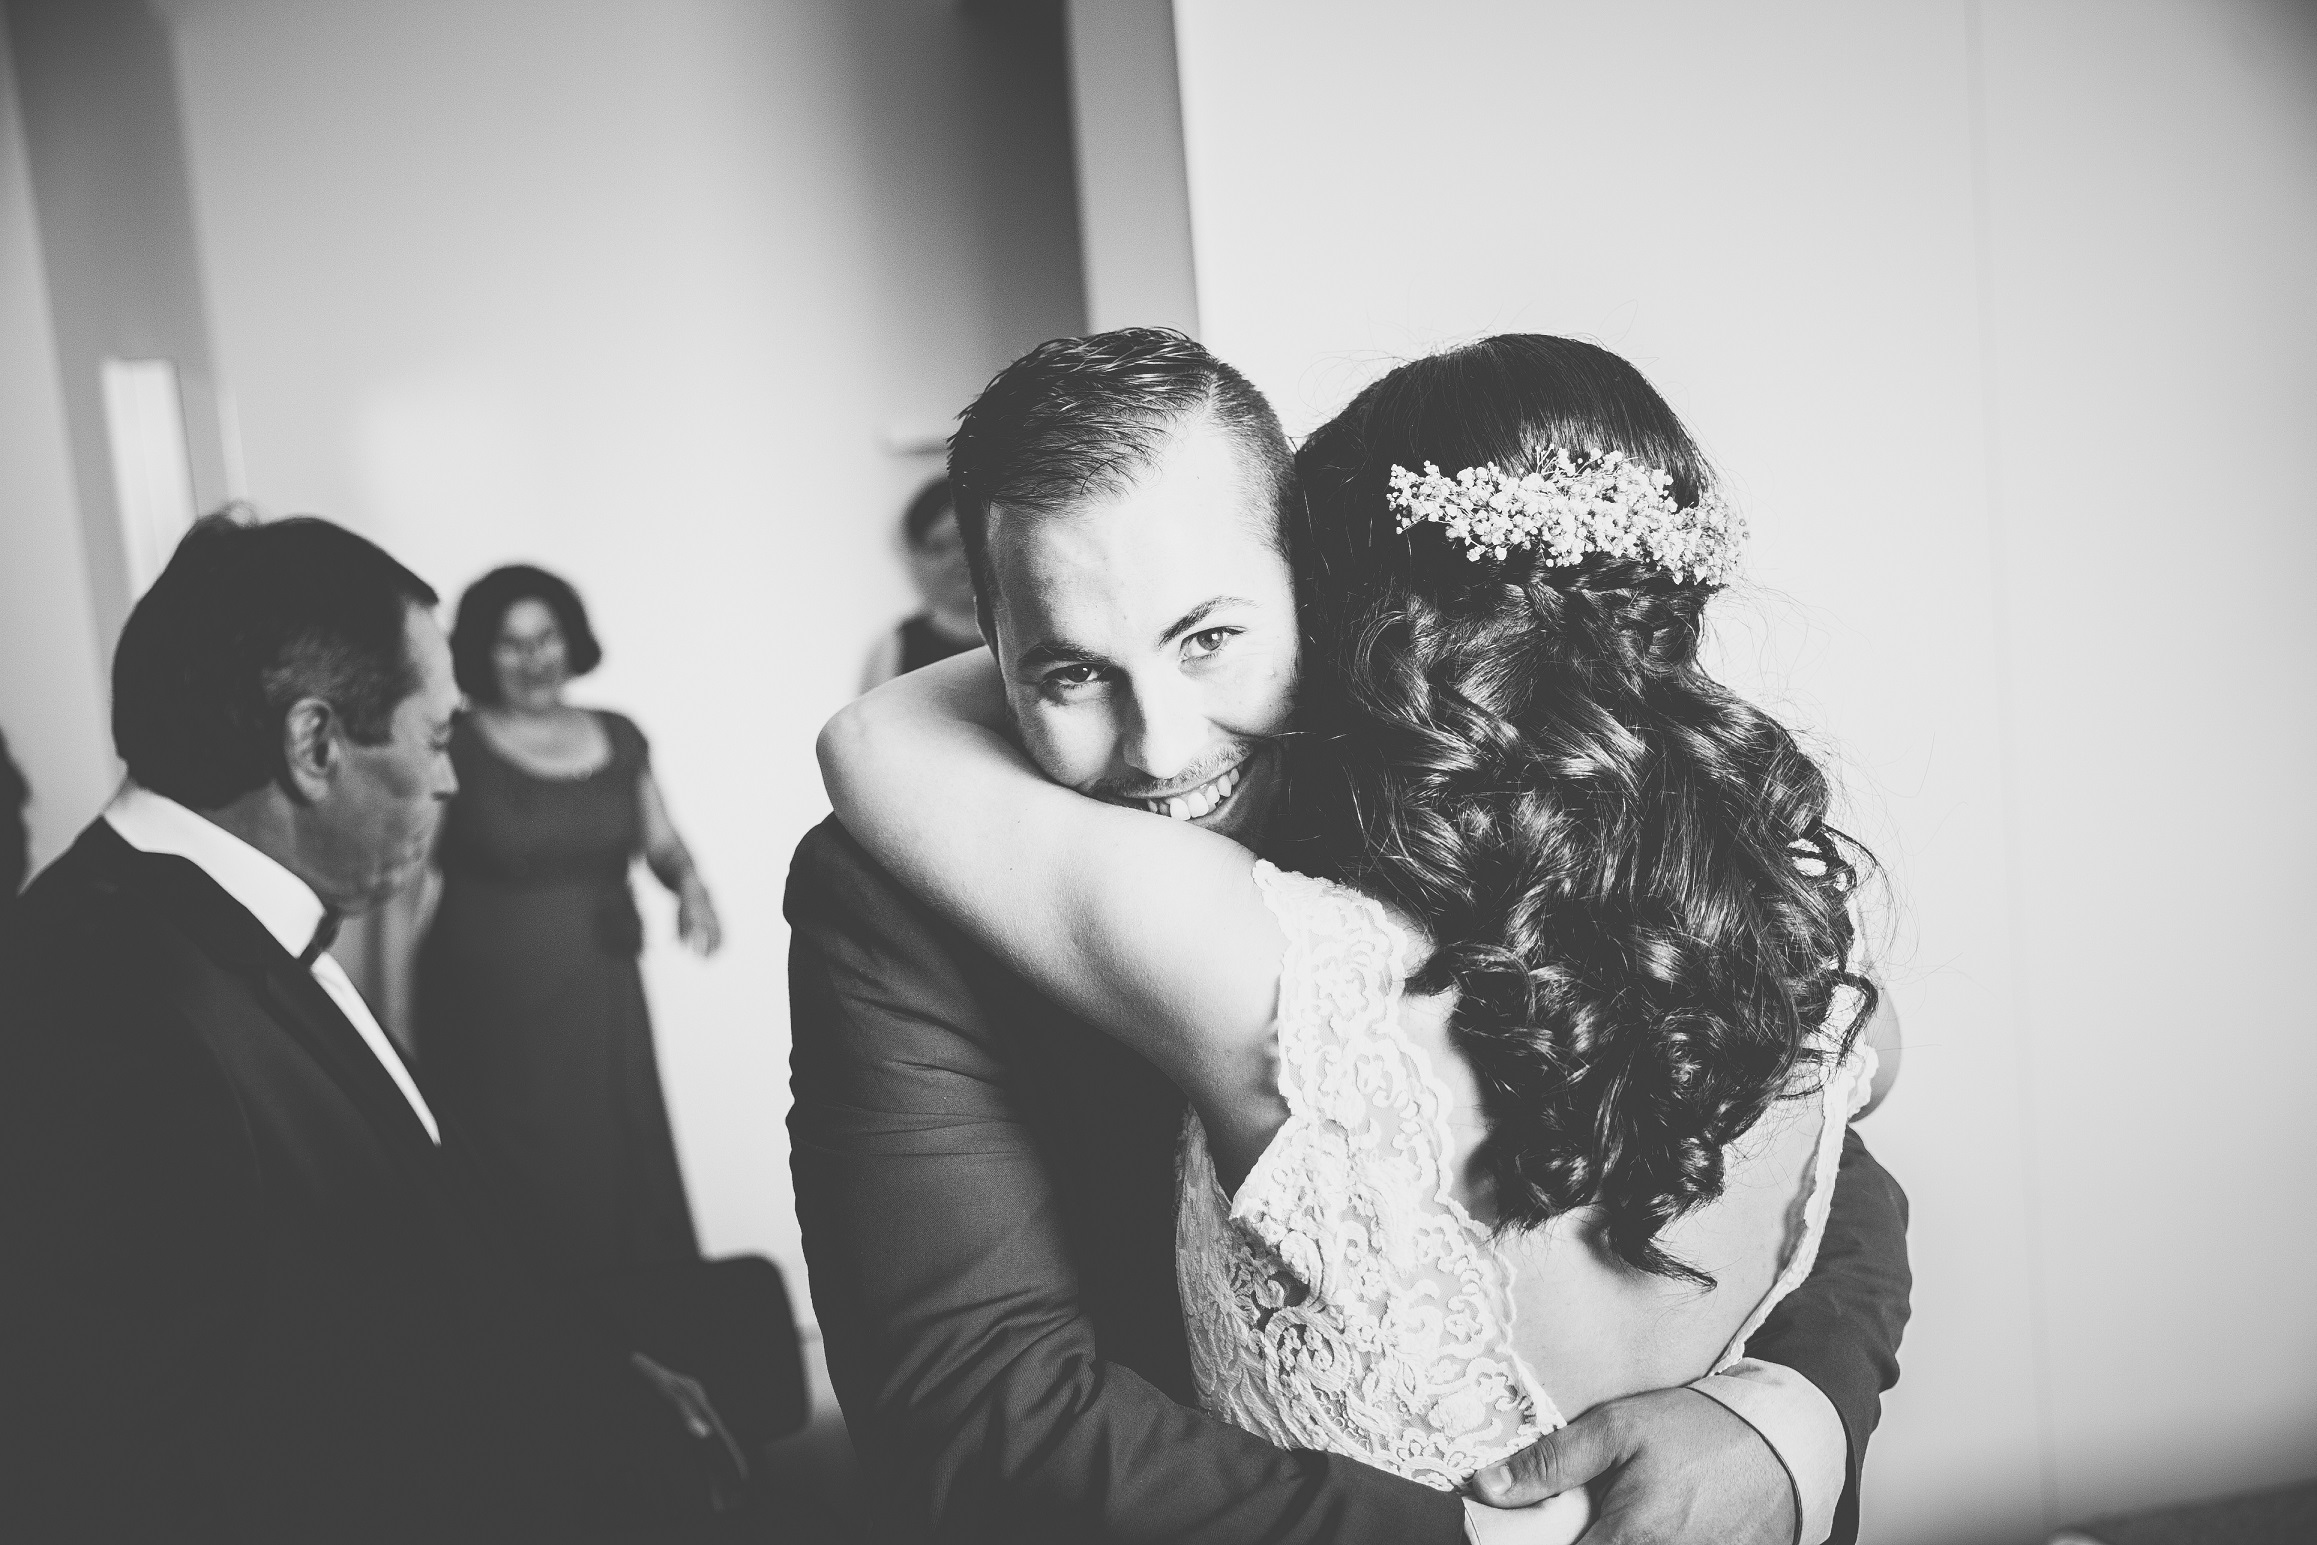 nn_wedding_fotografia_abrazo_hermano.JPG